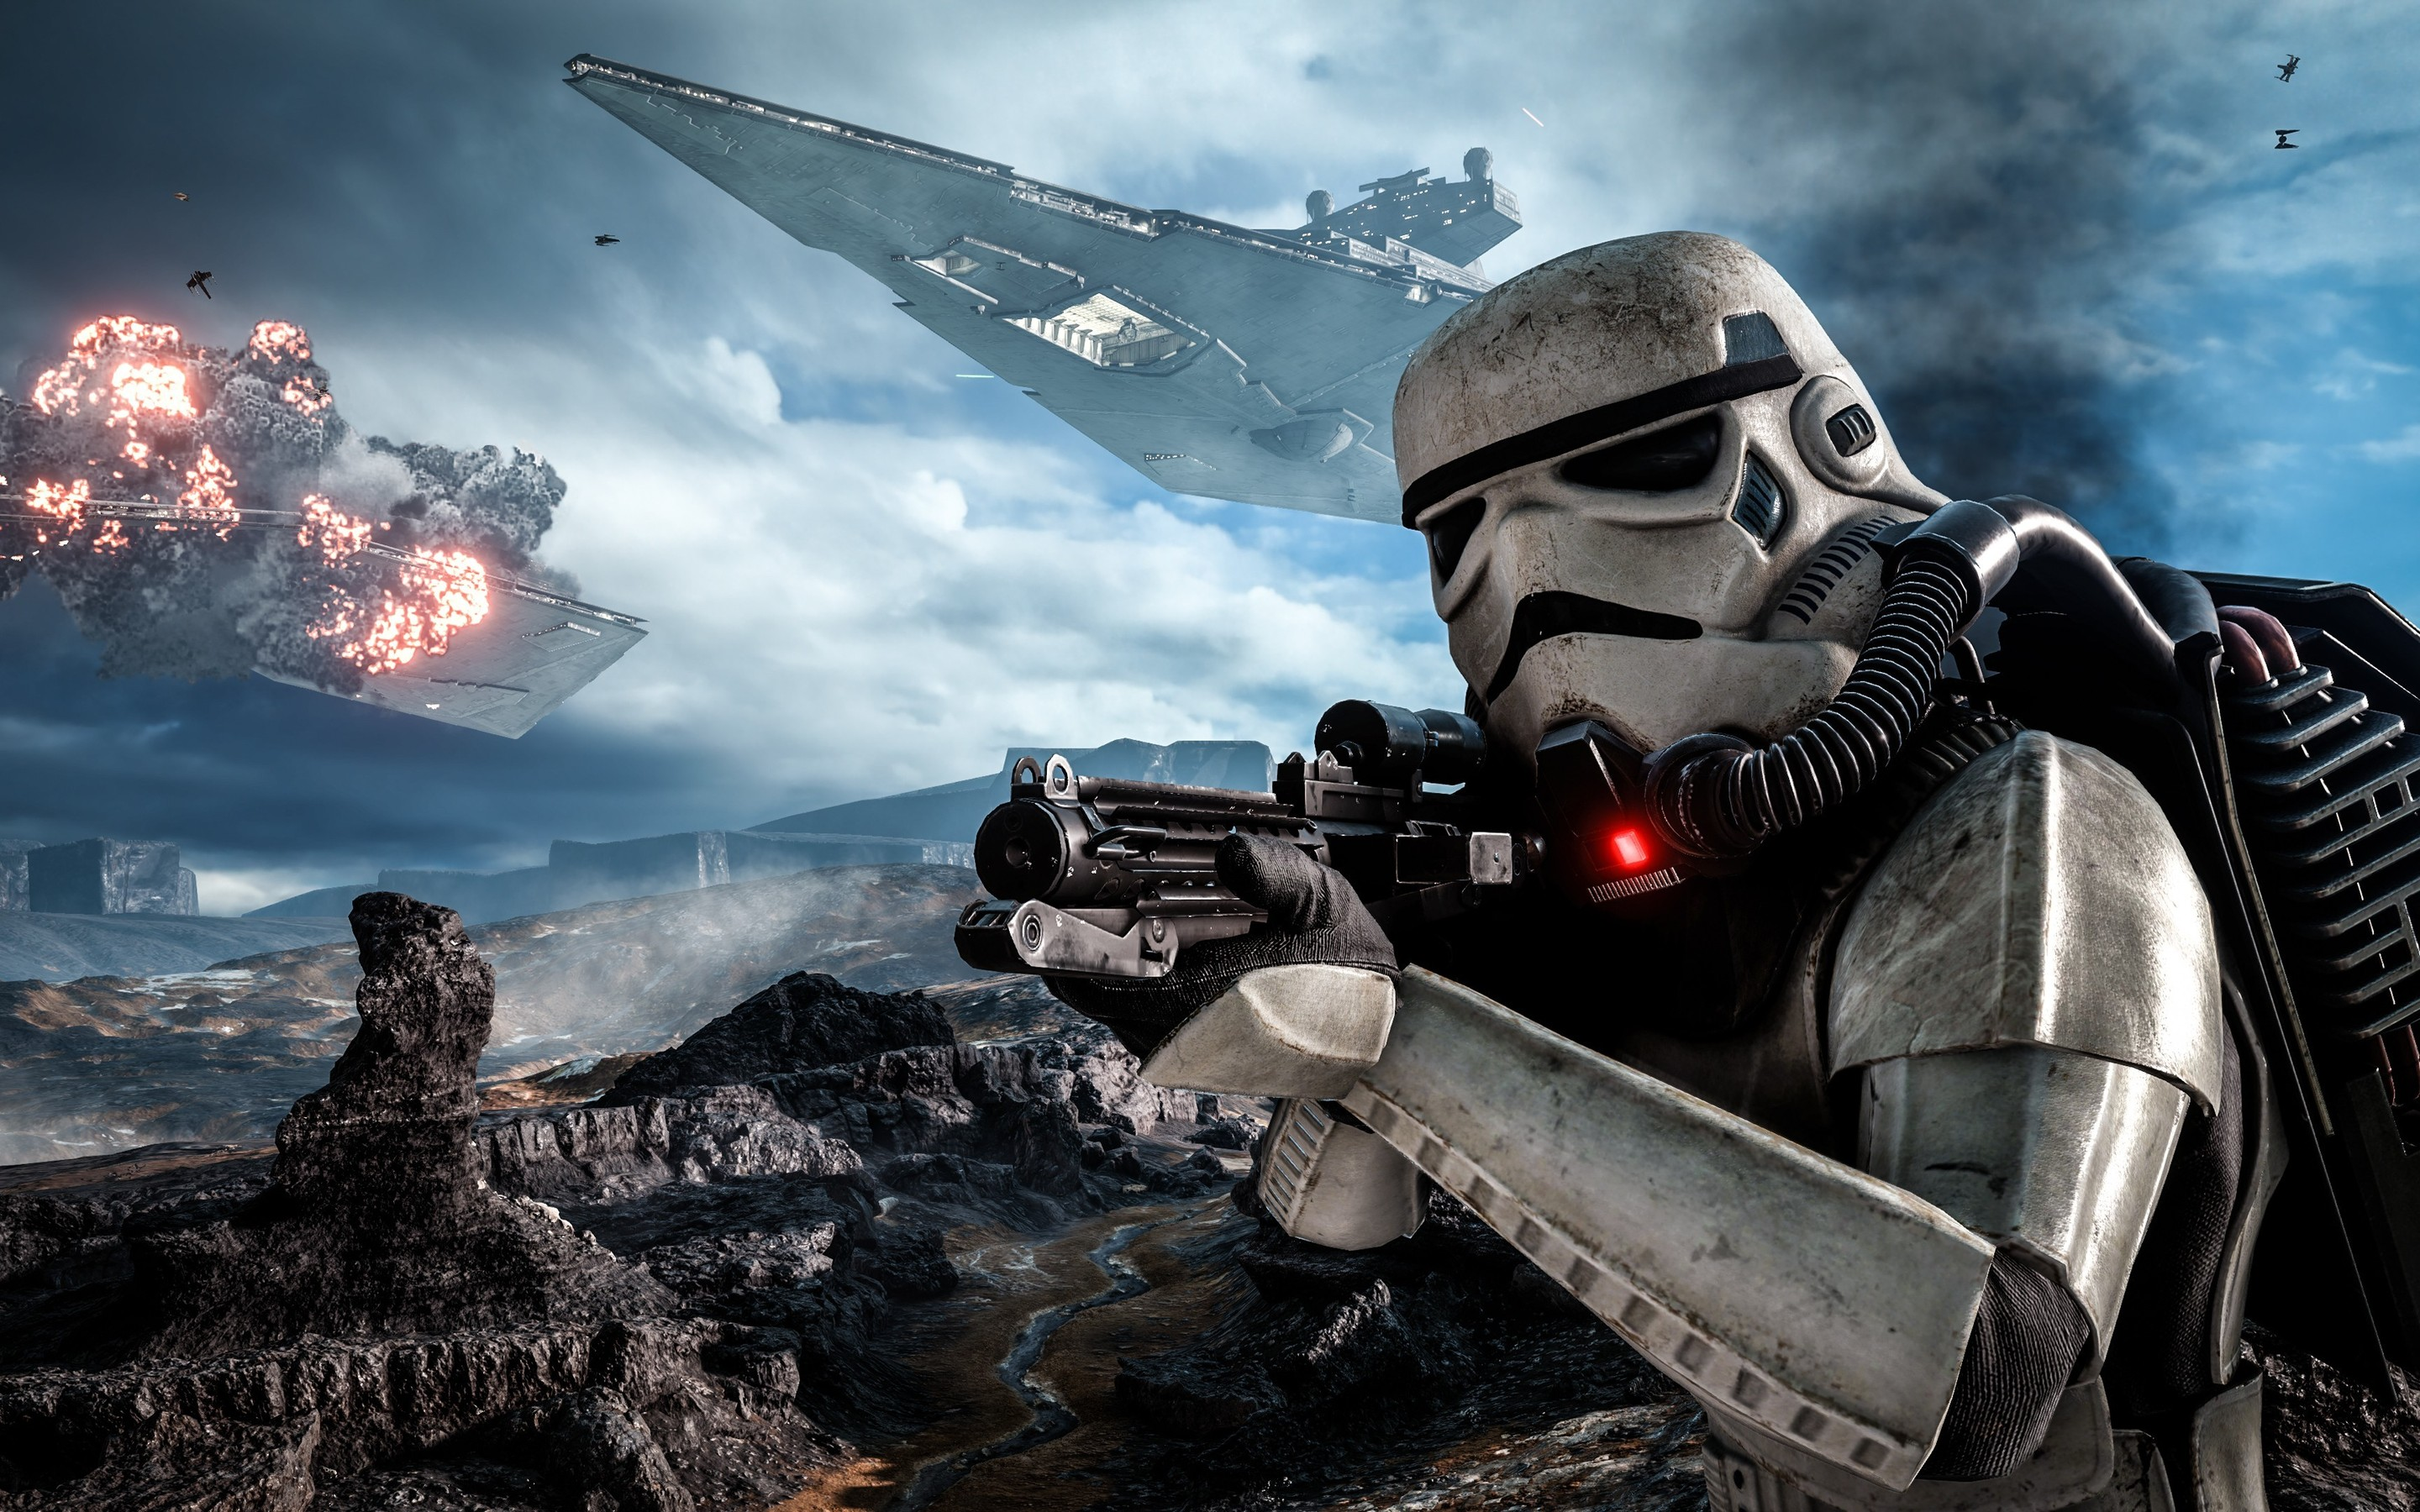 640x960 stormtroopers star wars battlefront iphone 4, iphone 4s hd